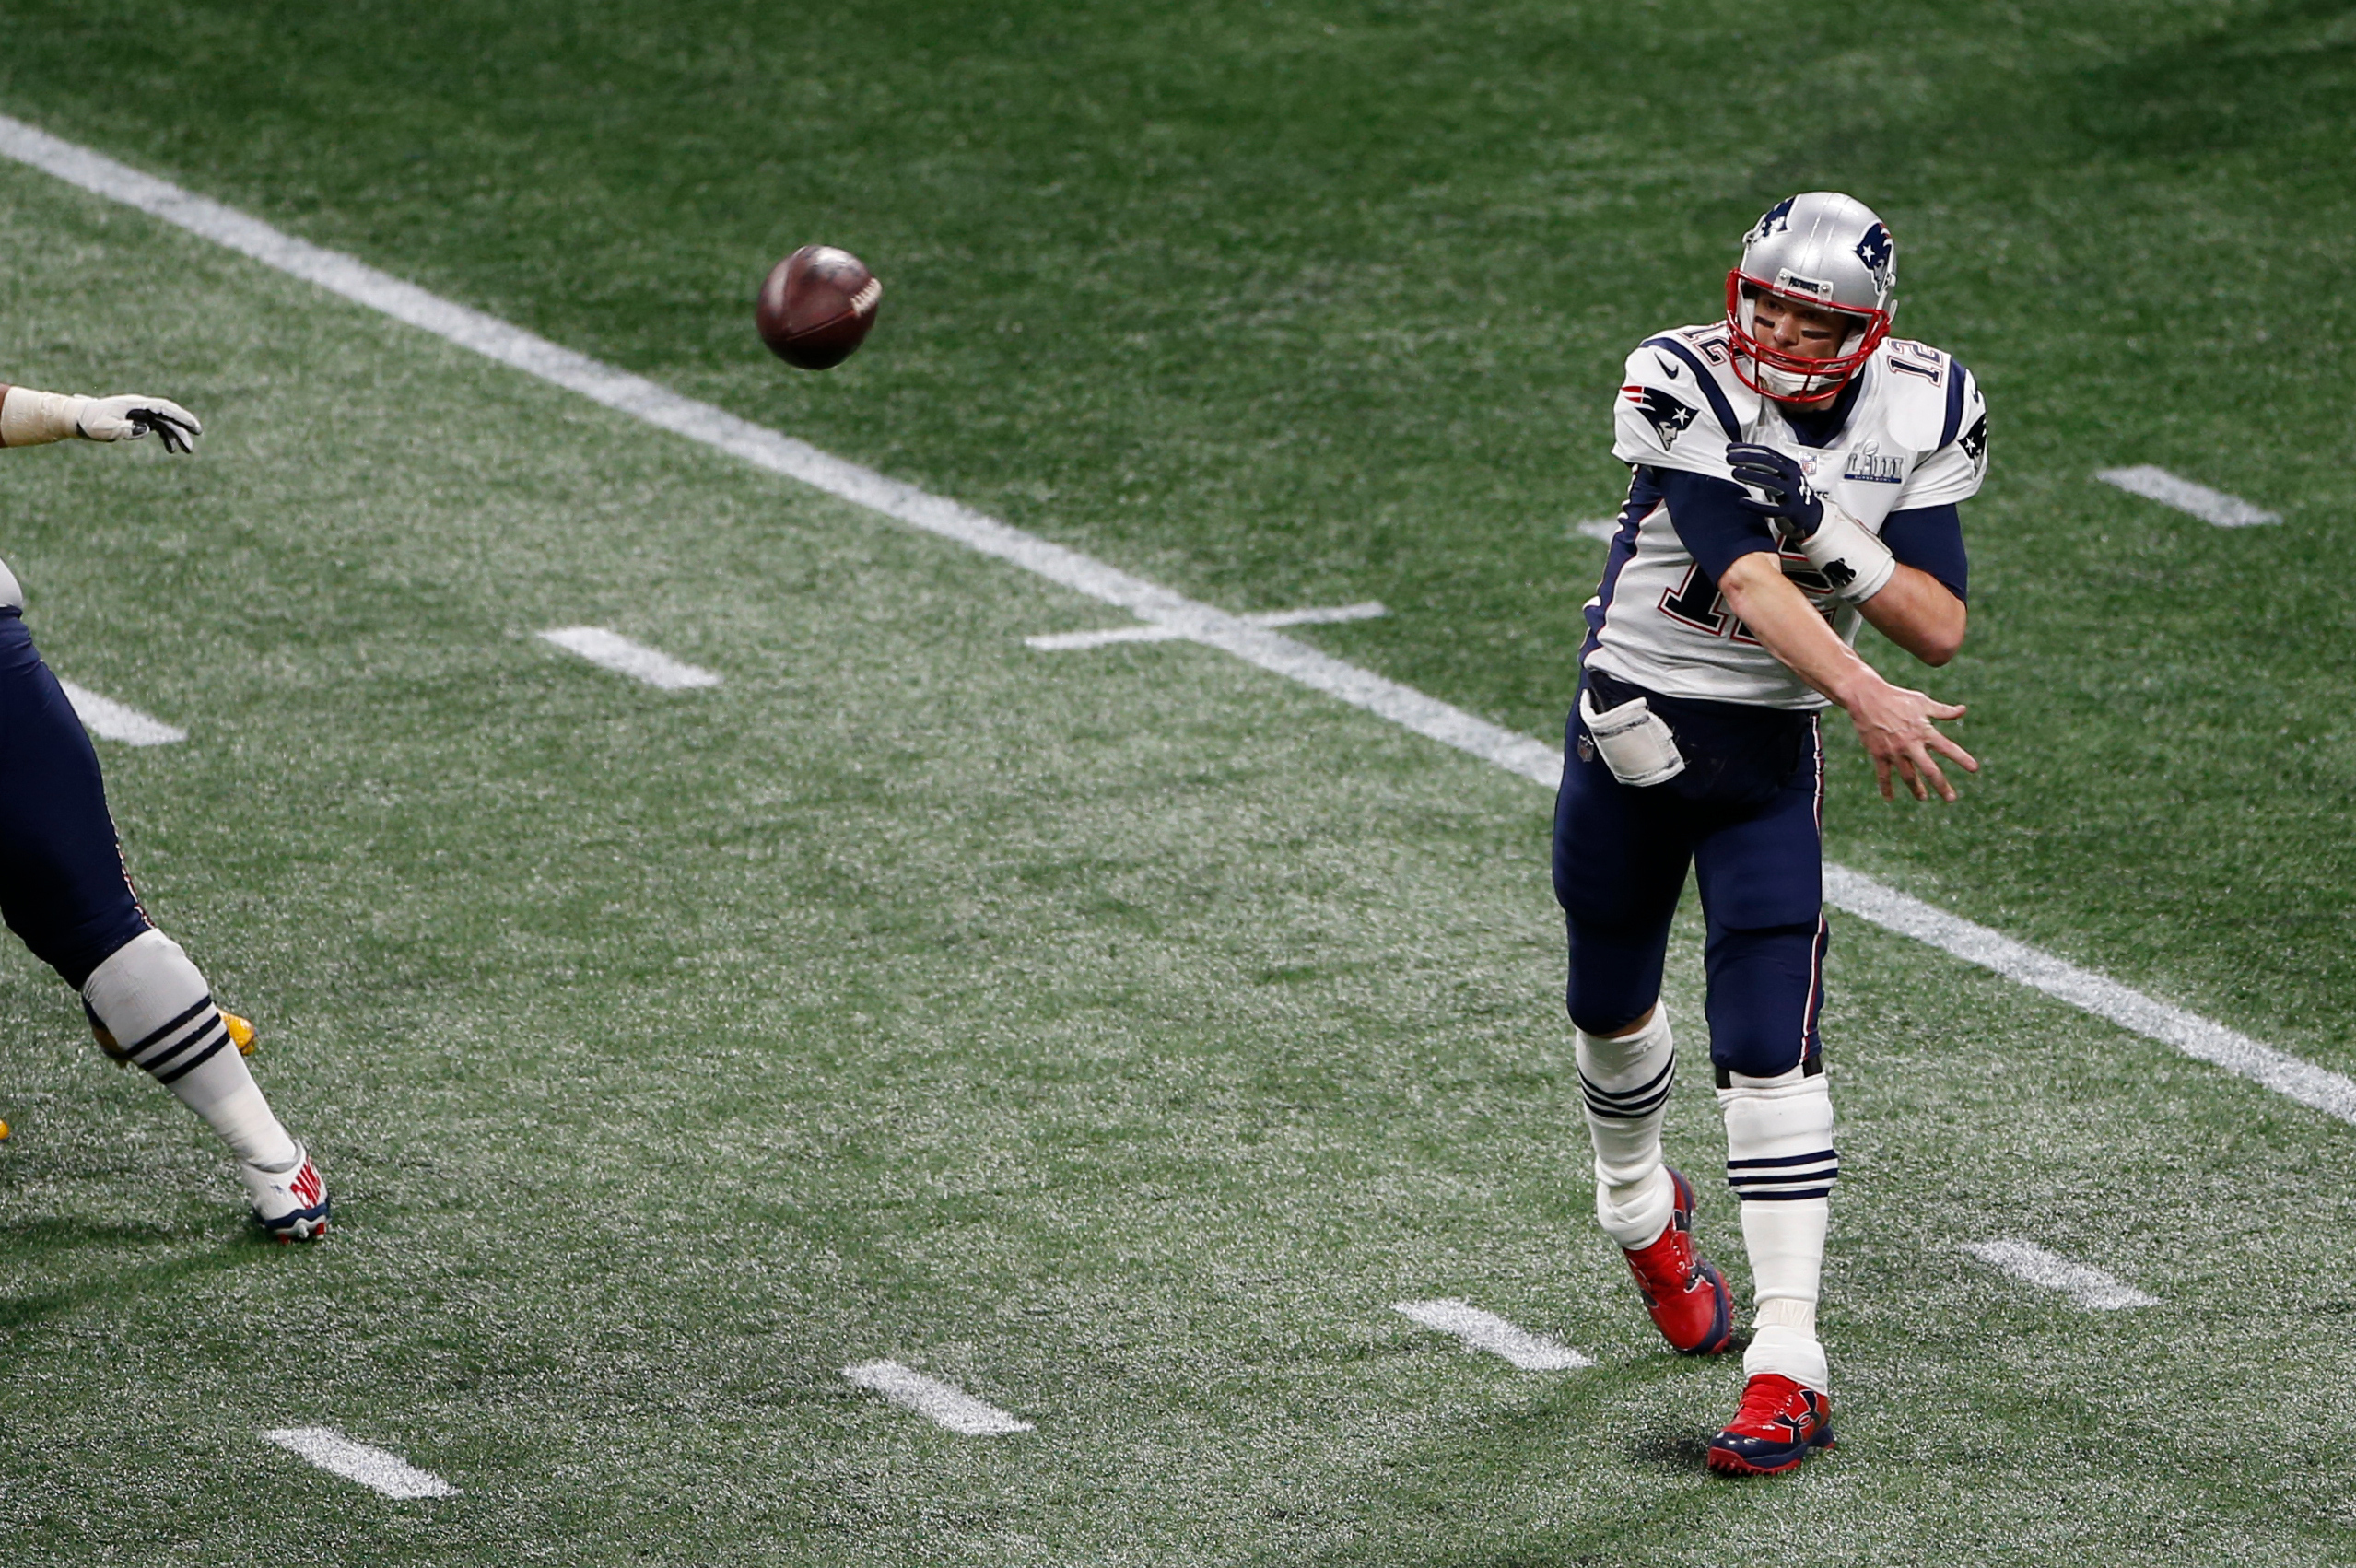 174bfe28 2019 New England Patriots Schedule: Full Listing of Dates, Times and ...